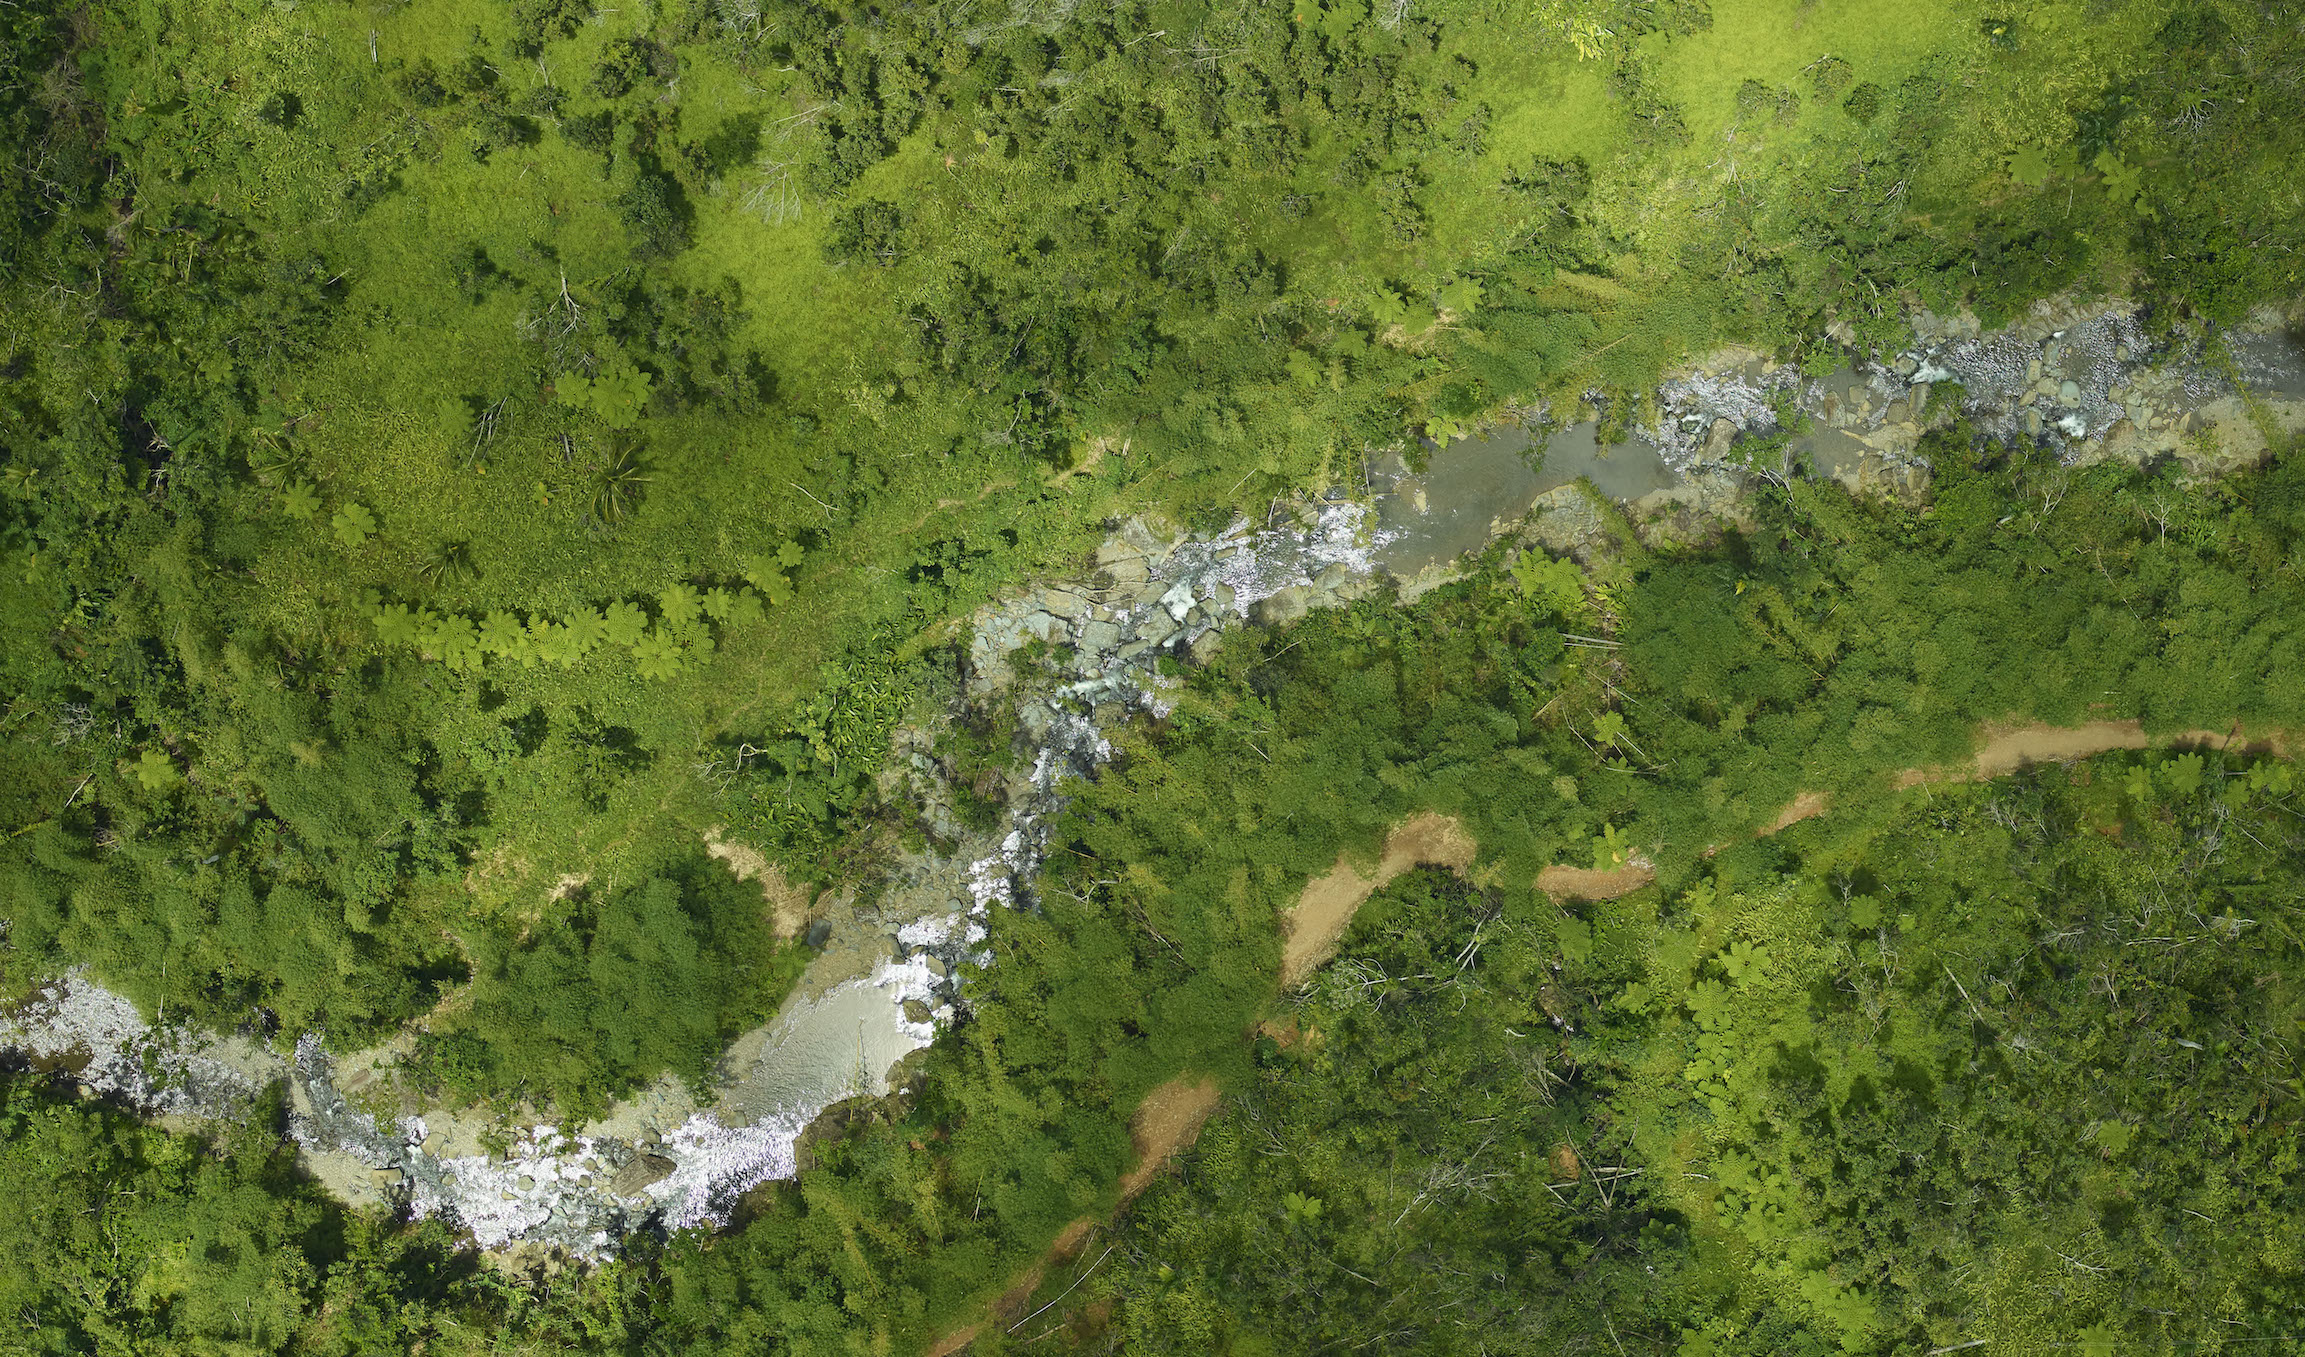 Images Reveal Extent Of Hurricane Damage To Puerto Rican Forests